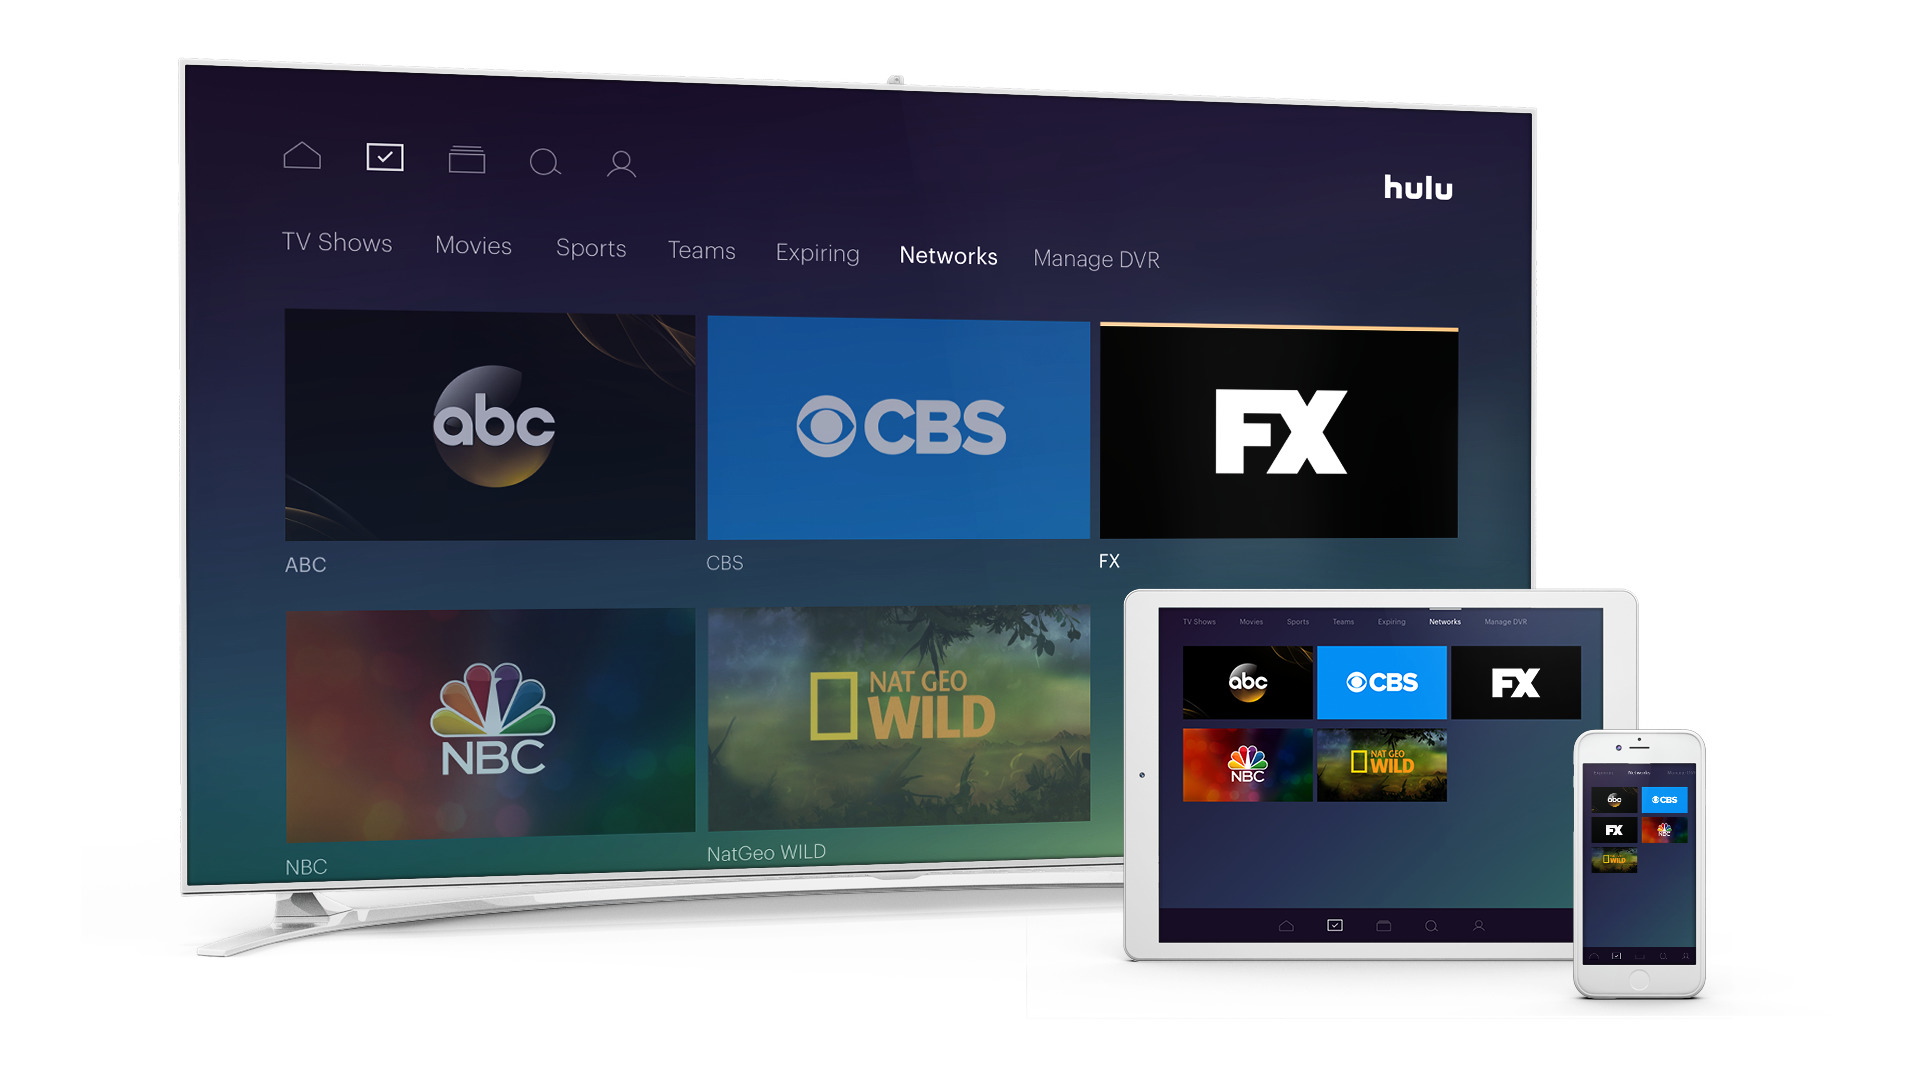 Hulu Hulu Live Tv Beta Bundles Up To 50 Channels For 39 99 Month